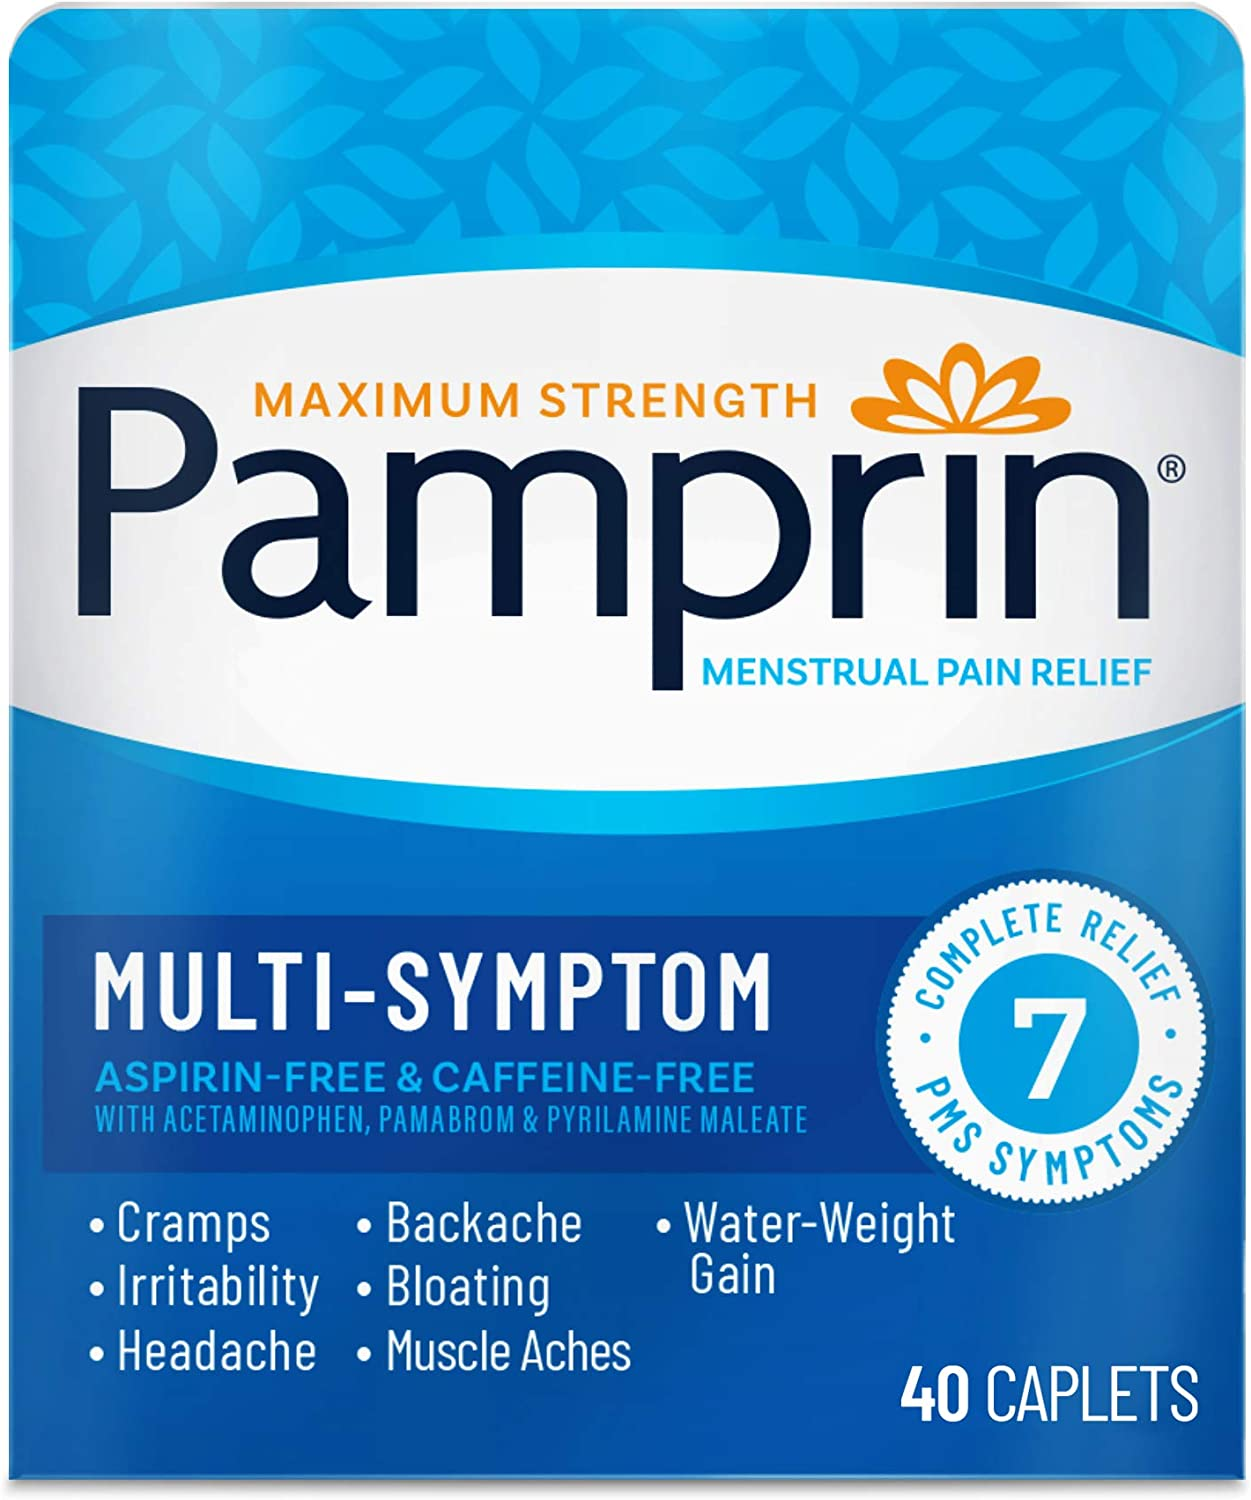 Pamprin Multi-Symptom Formula, with Acetaminophen, Menstrual Period Symptoms Relief including Cramps, Pain, and Bloating, 40 Caplets